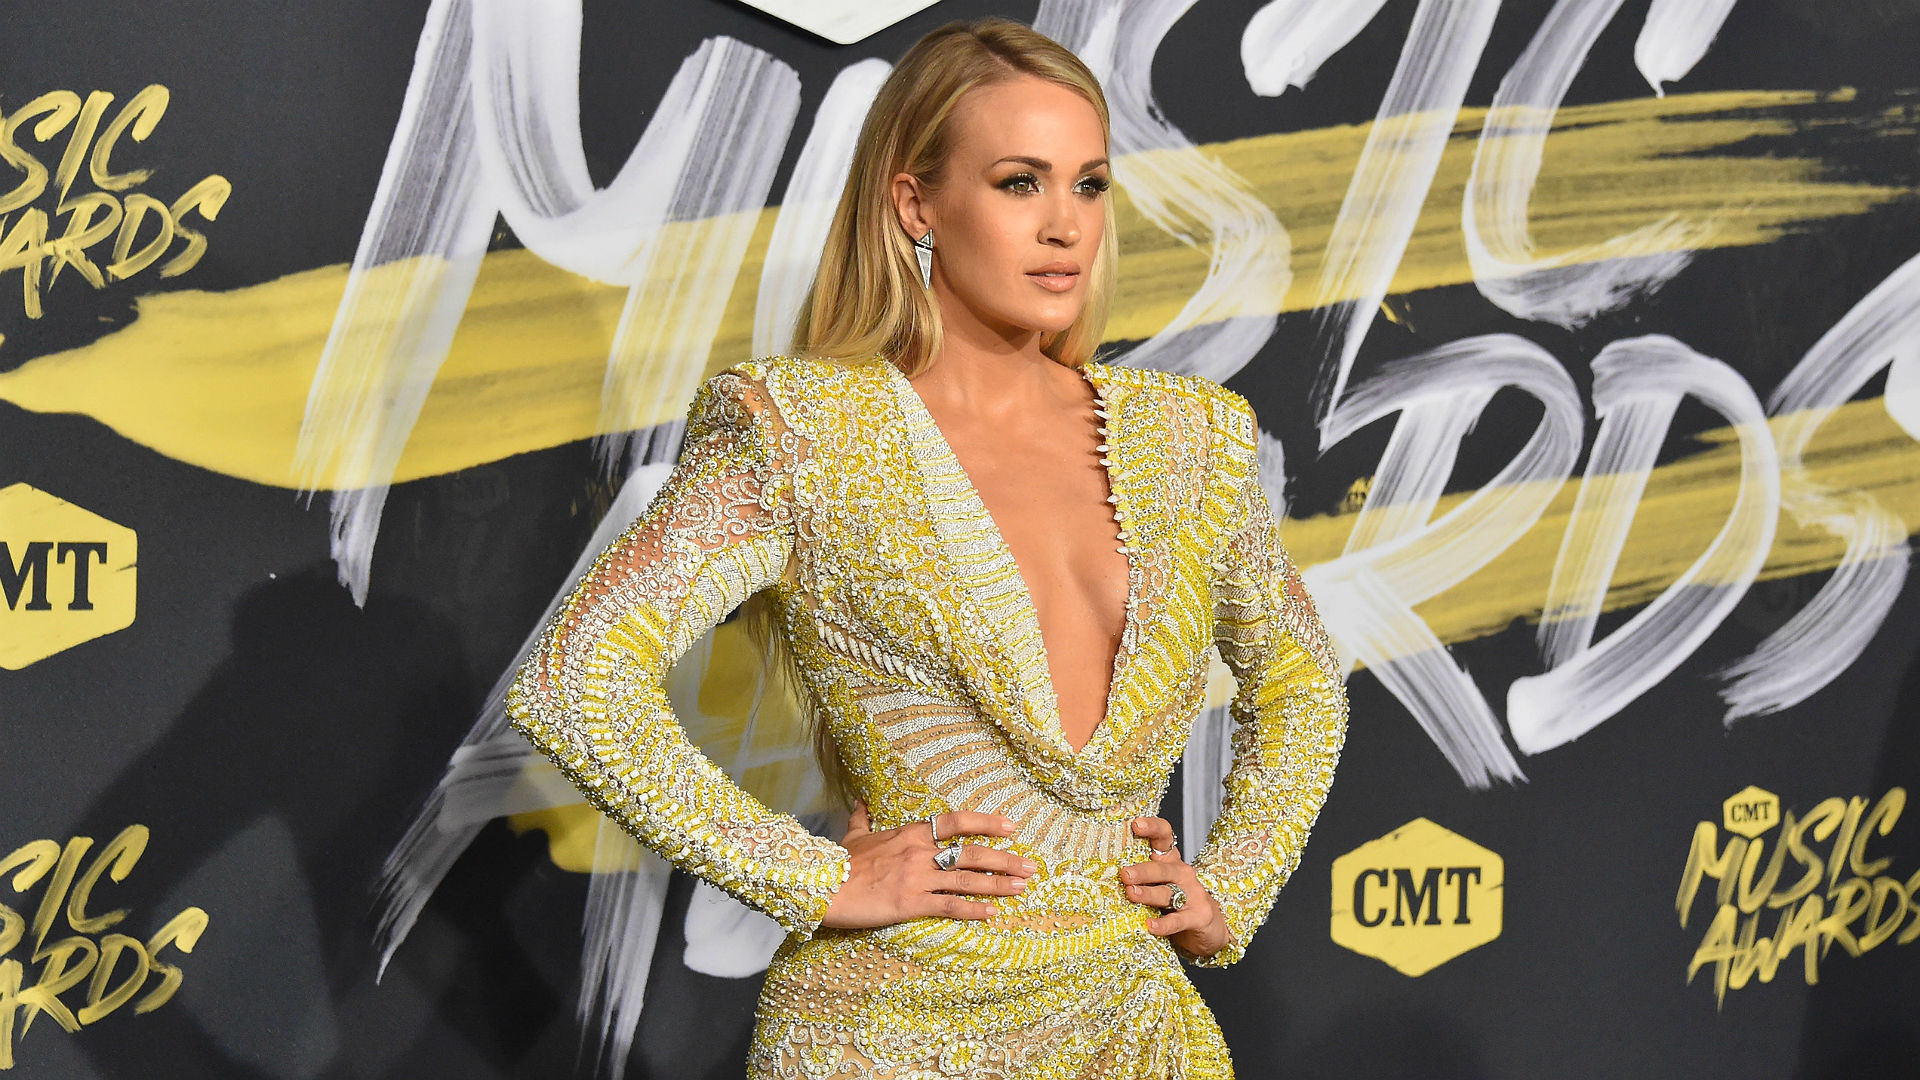 Carrie Underwood's new 'Sunday Night Football' song angers fans